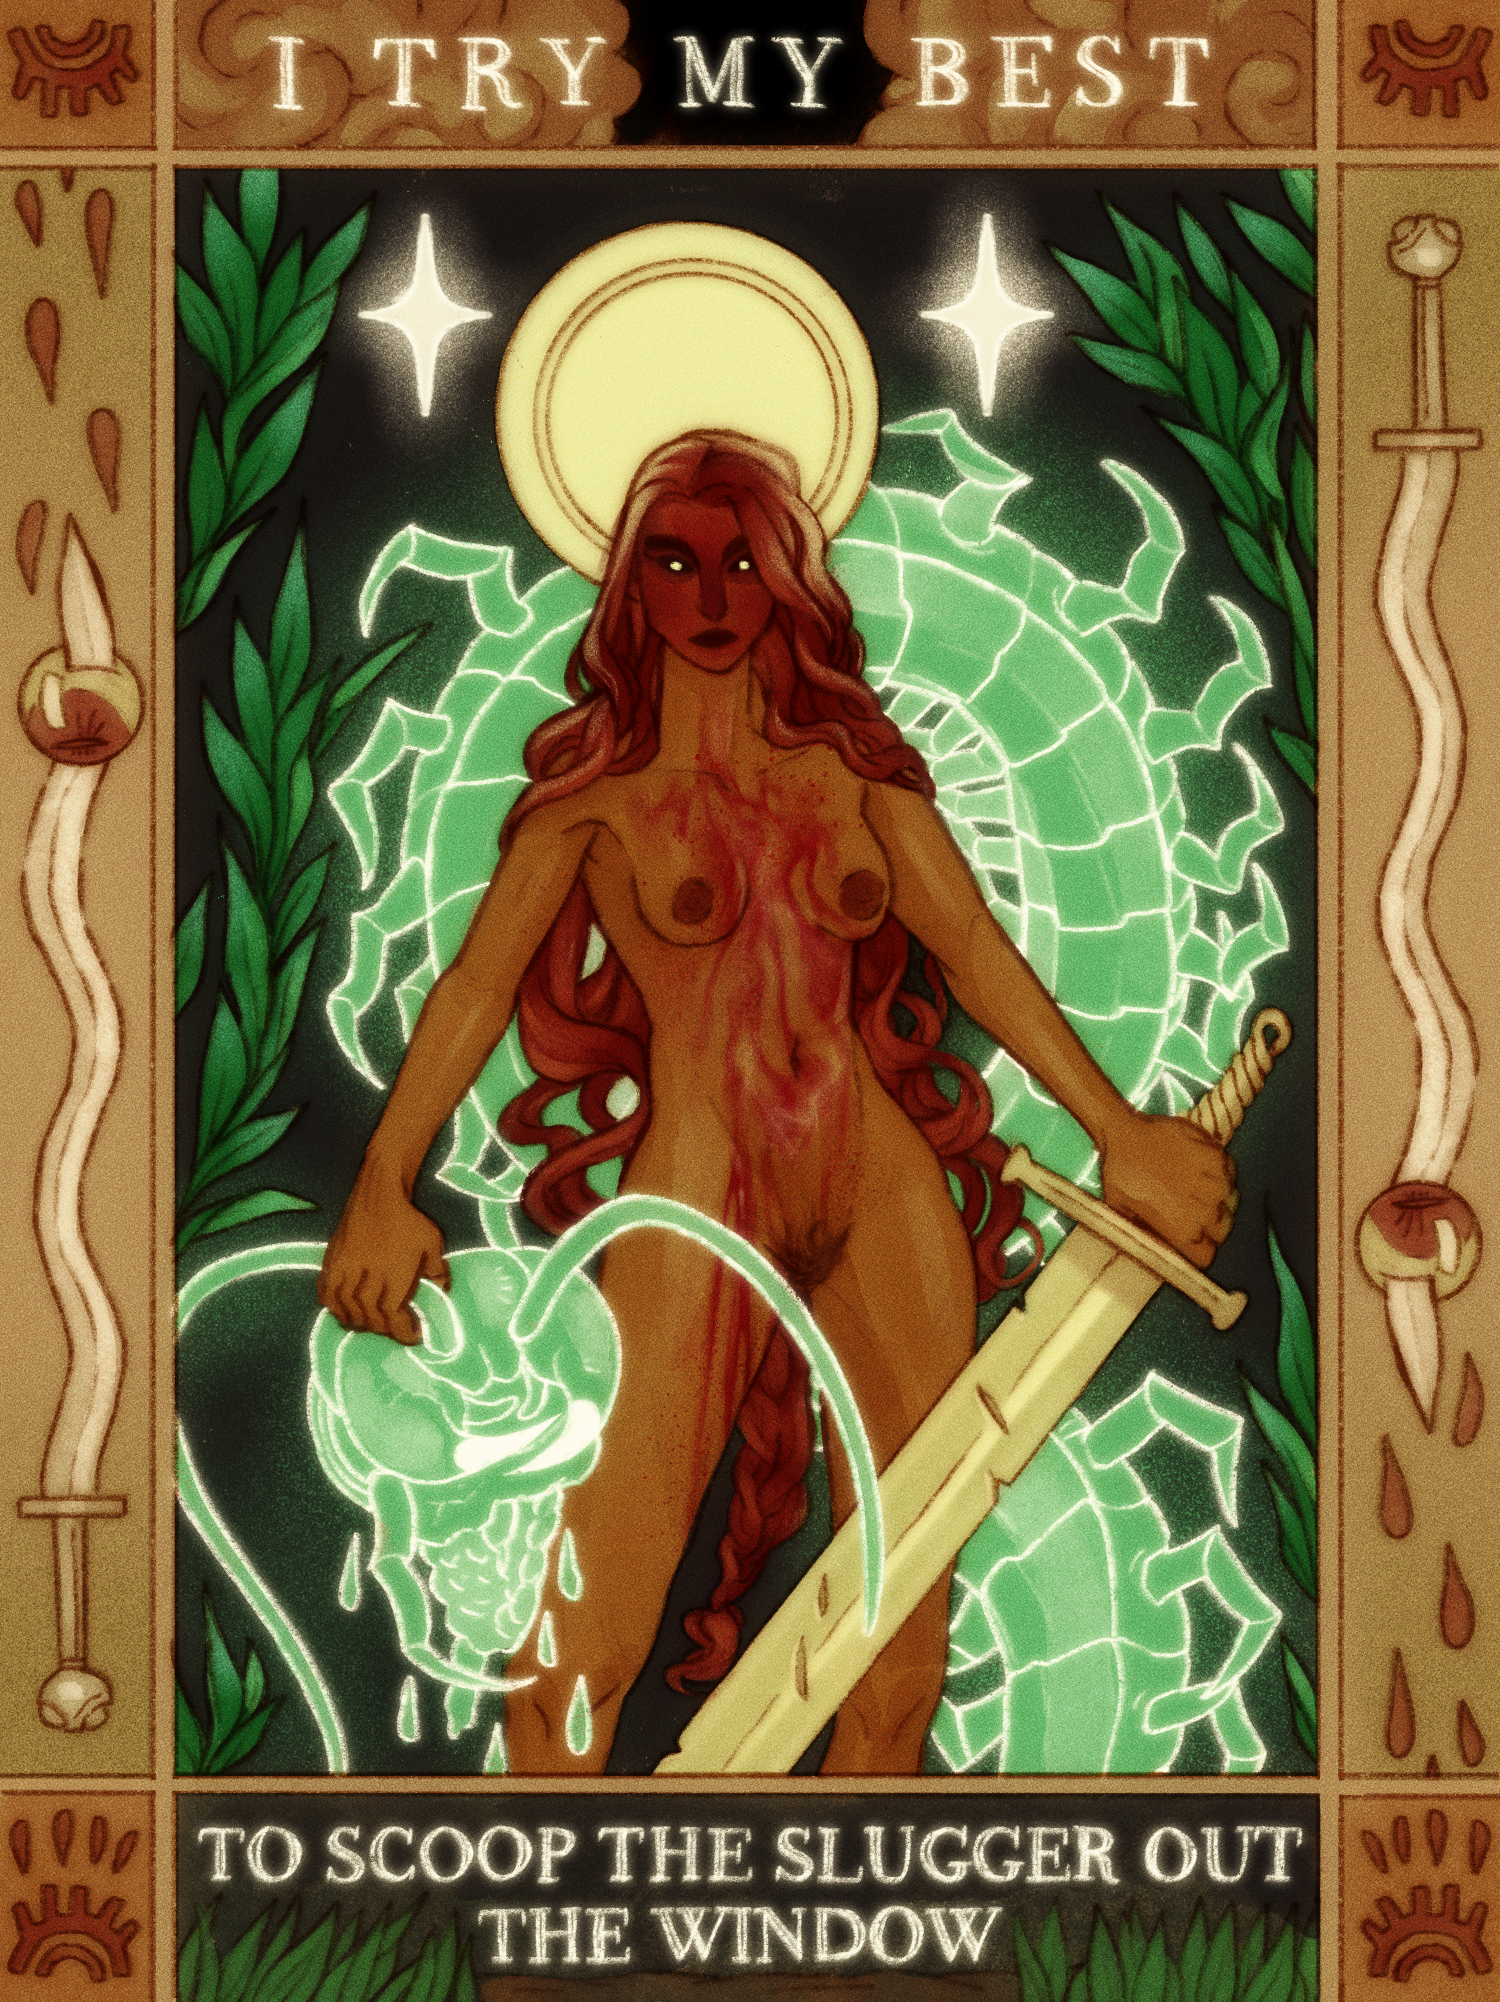 A vertical illustration with inspiration from russian fairy tale illustrations, depicting a woman covered in blood with a large sword and a giant severed centipede head. The centipede's body wraps around behind her, and her head is framed by a halo. The w